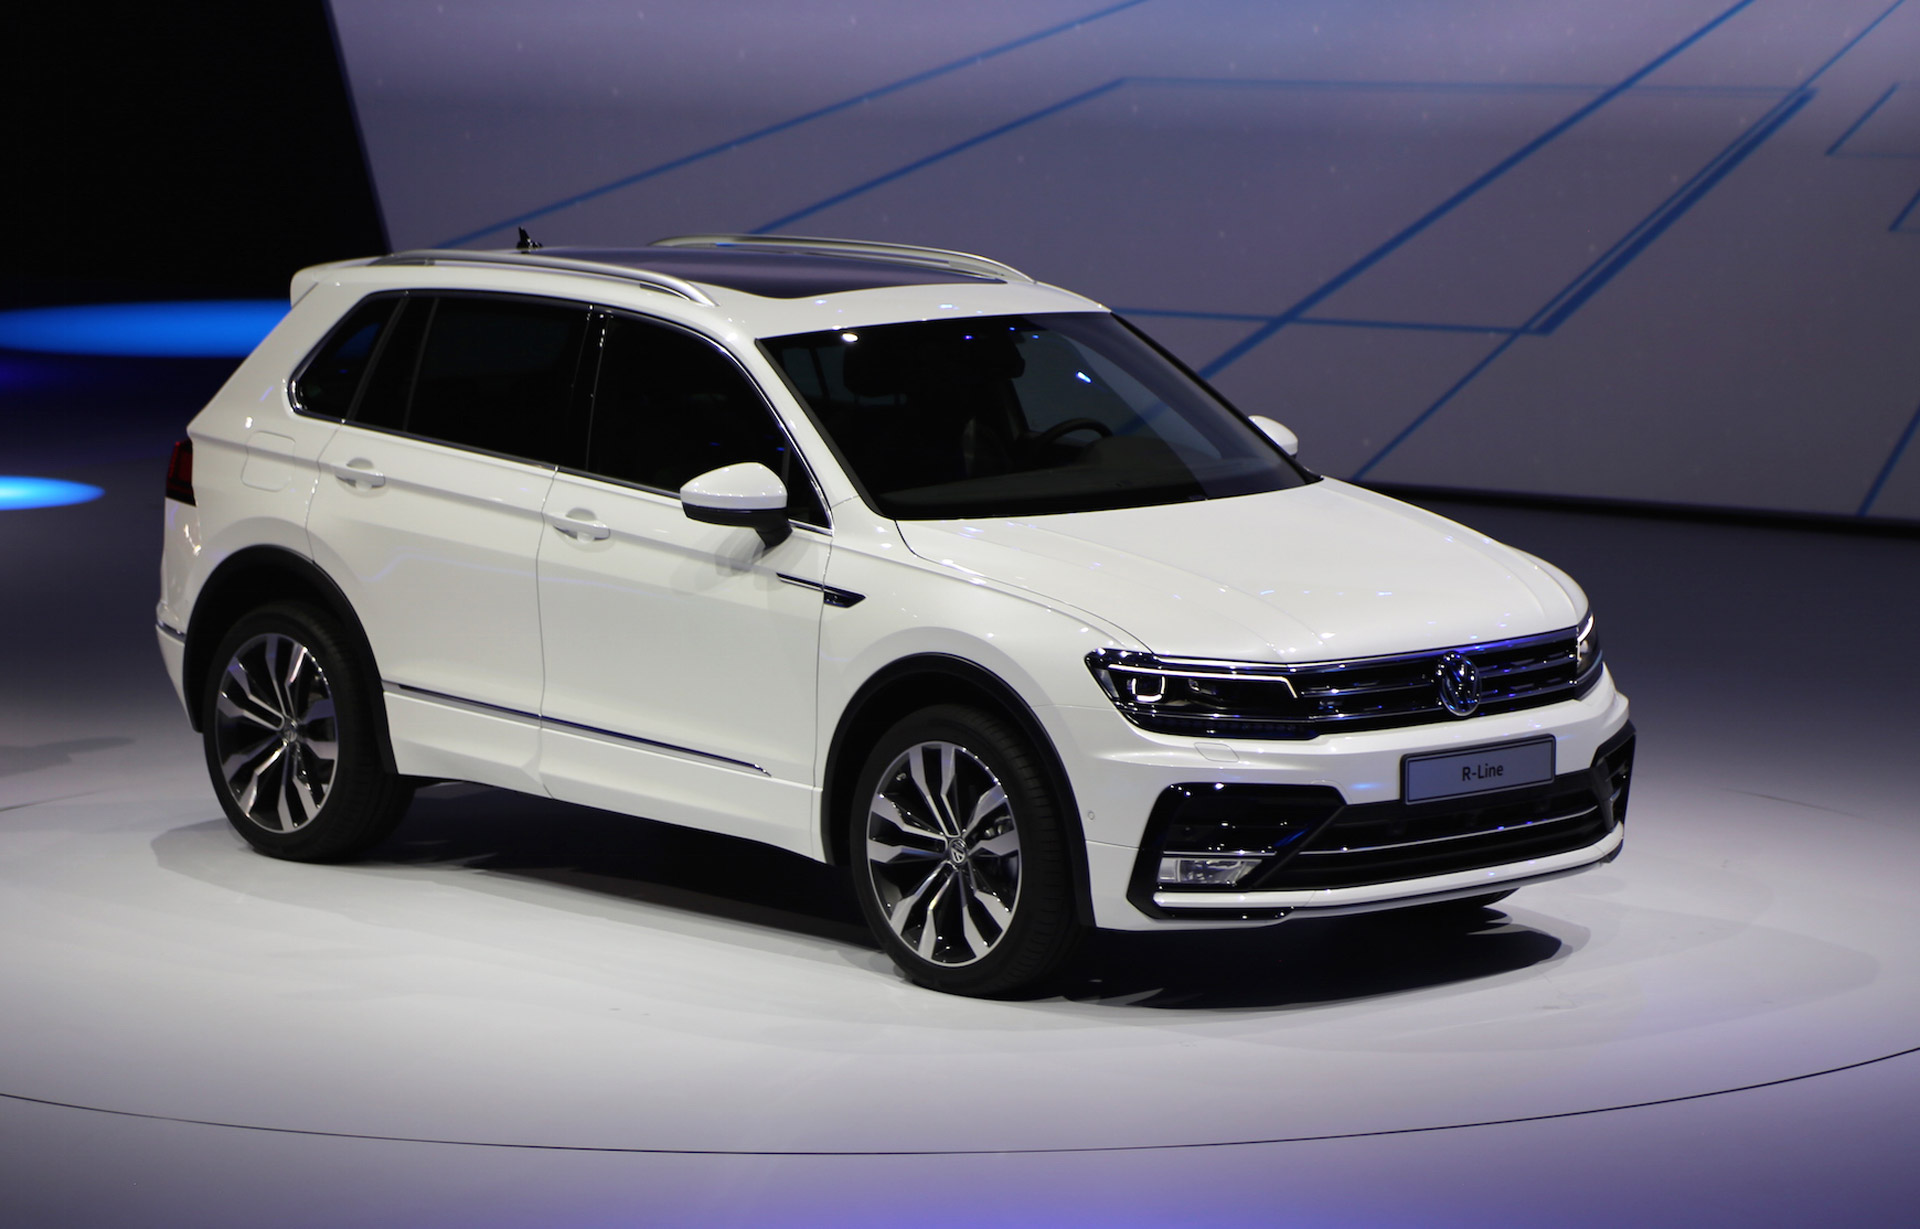 2017 volkswagen tiguan compact crossover revealed at frankfurt auto show. Black Bedroom Furniture Sets. Home Design Ideas